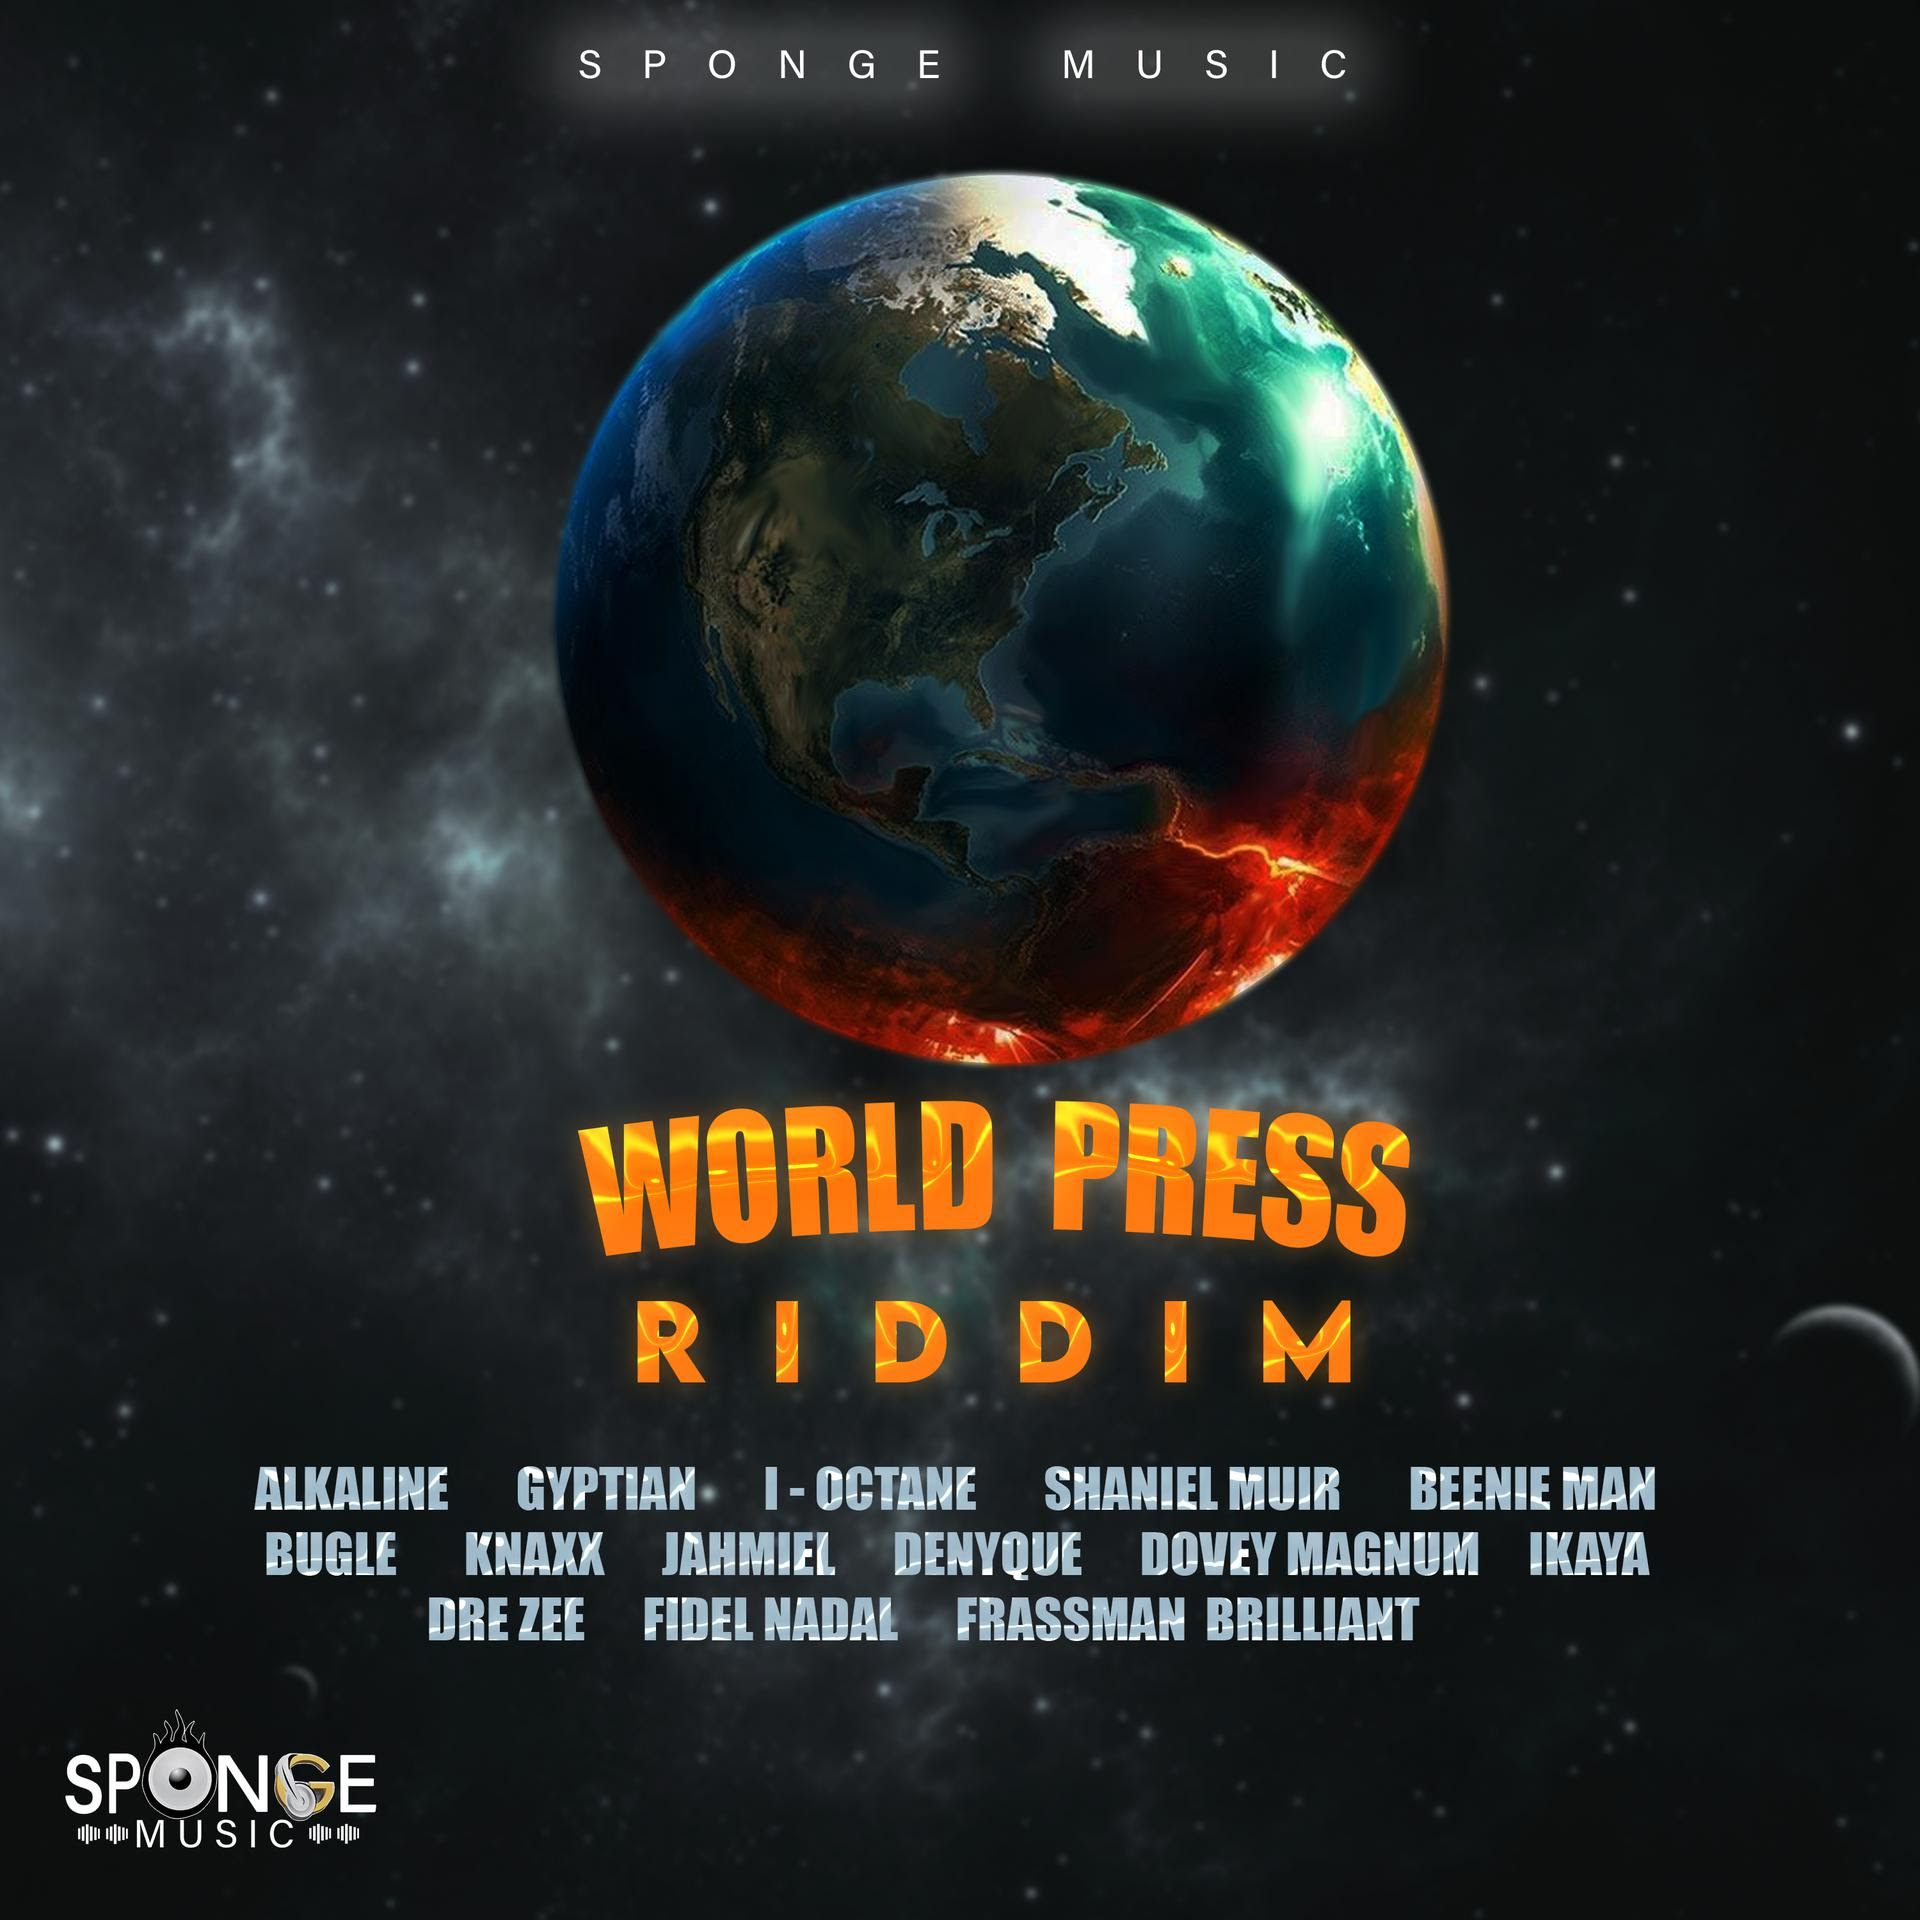 World Press Riddim – Sponge Music